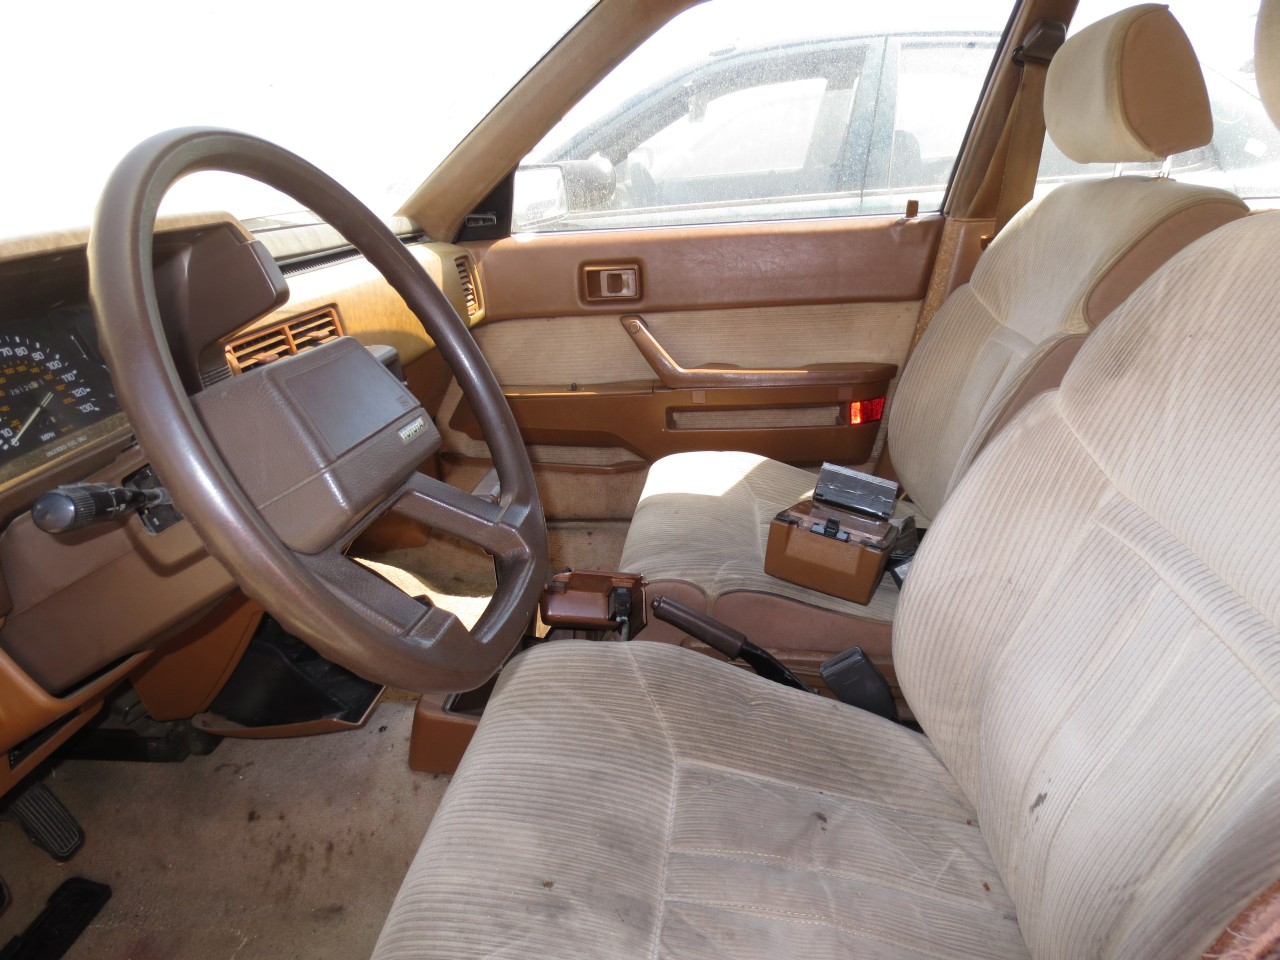 04 1984 toyota camry liftback down on the junkyard picture courtesy of murilee martin